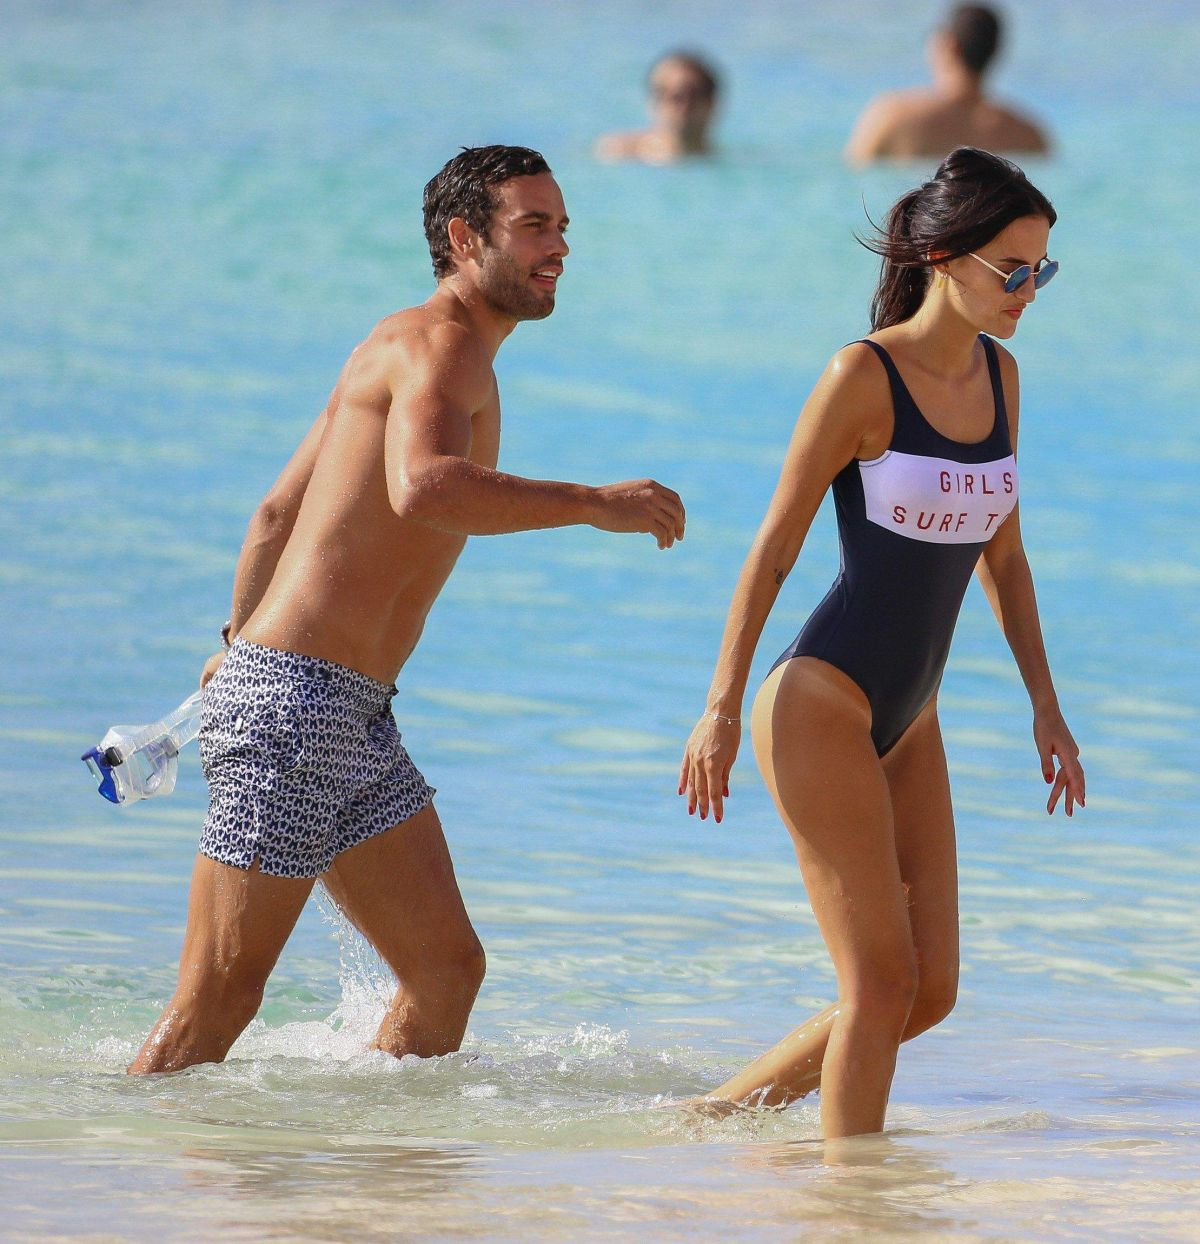 adc99062d56 Lucy Watson On the beach in Barbados - Celebzz